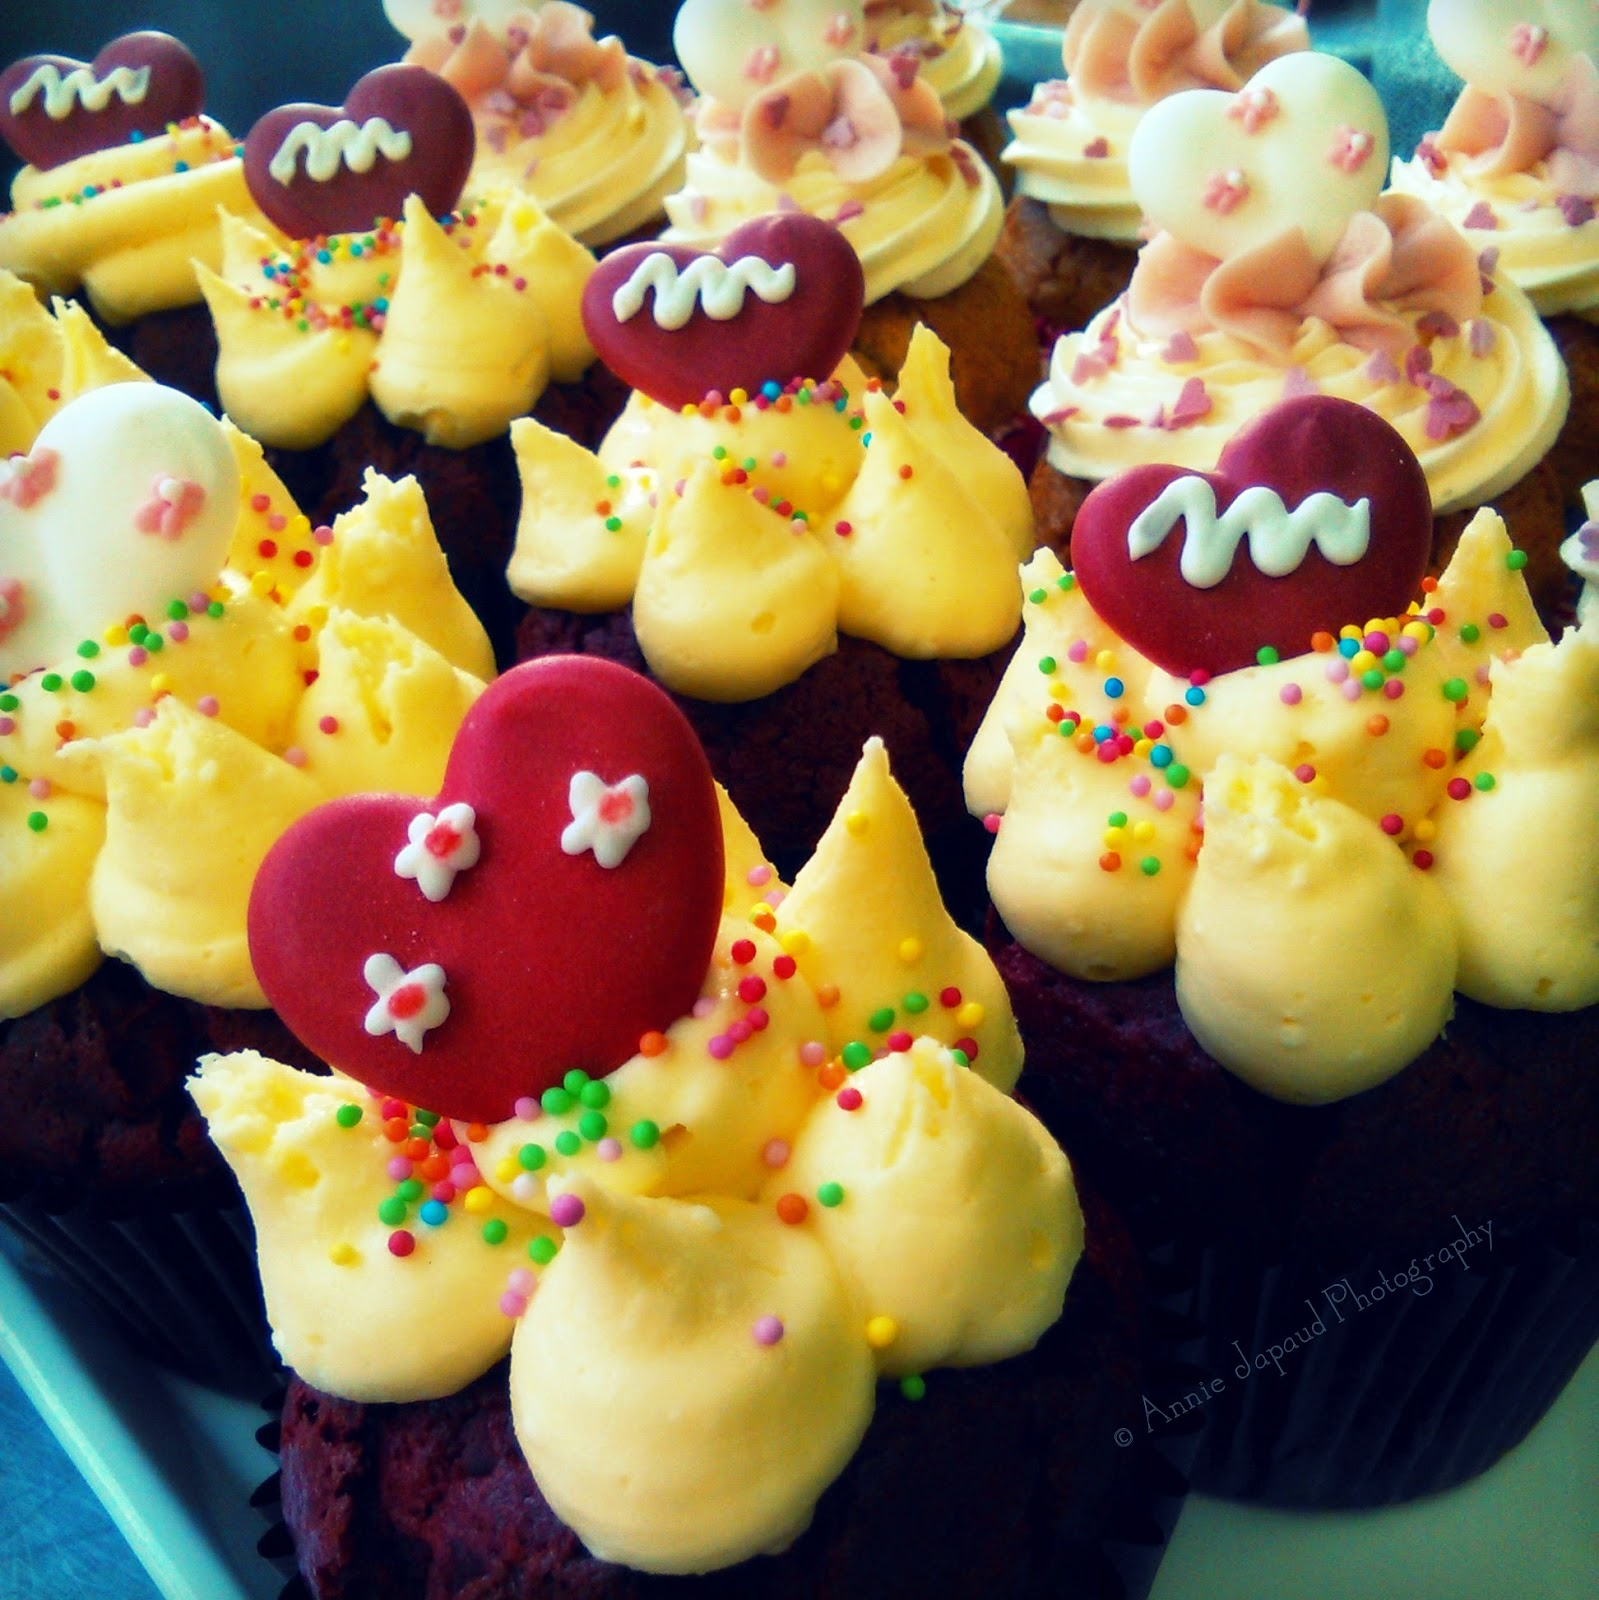 image of cupcakes with lovely colourful decoration